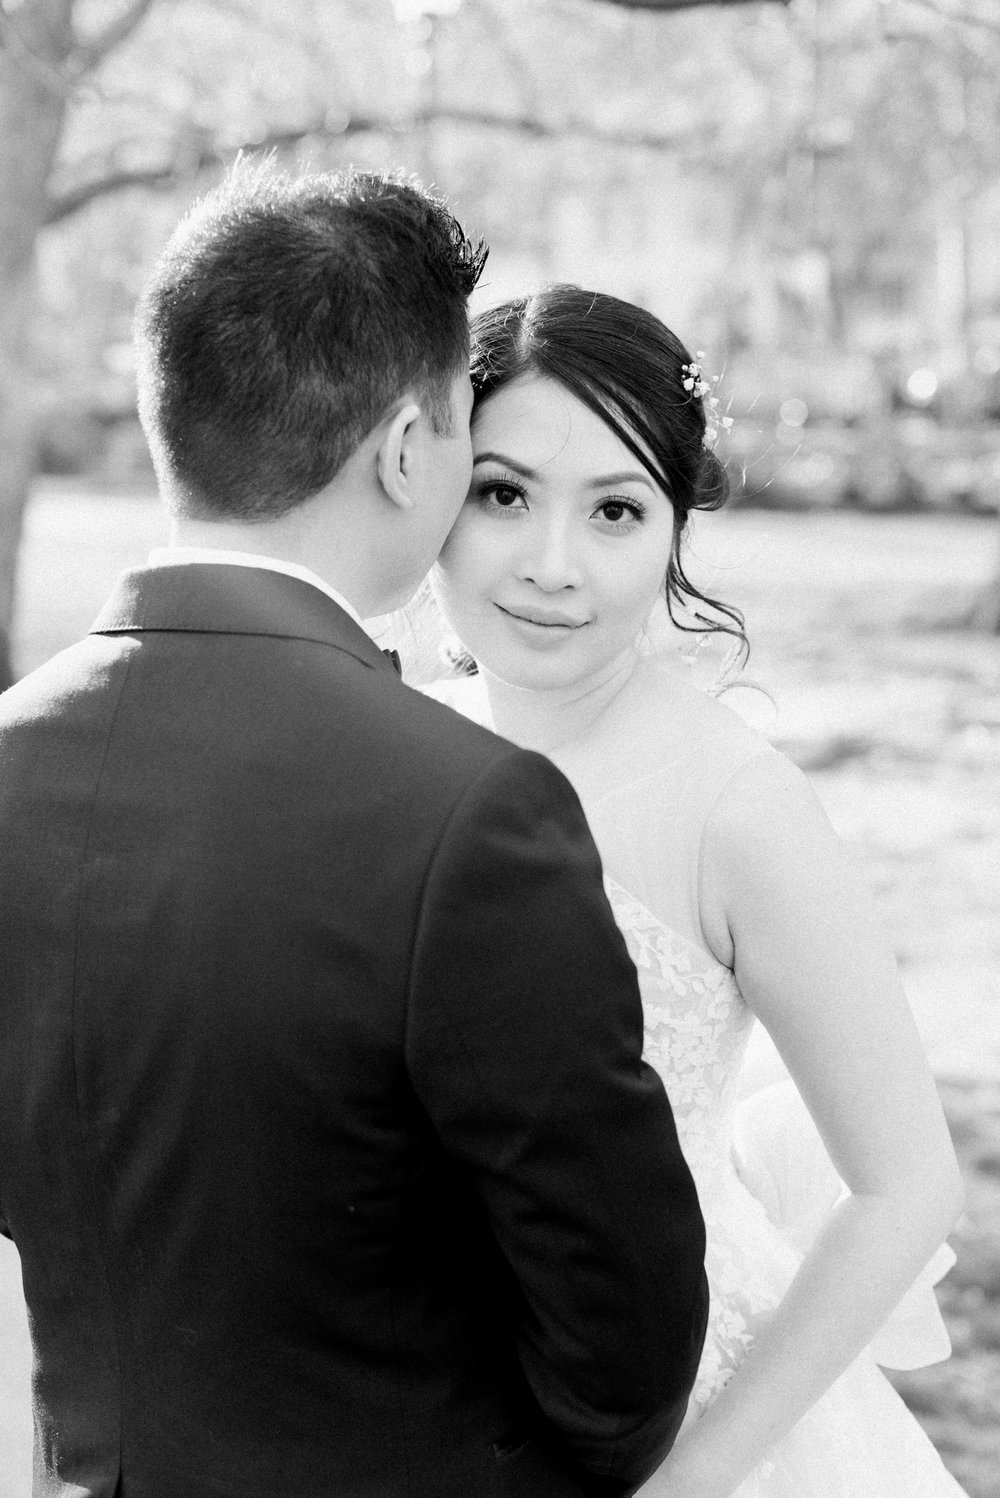 Bride and Groom Portraits at the Public Garden in Boston